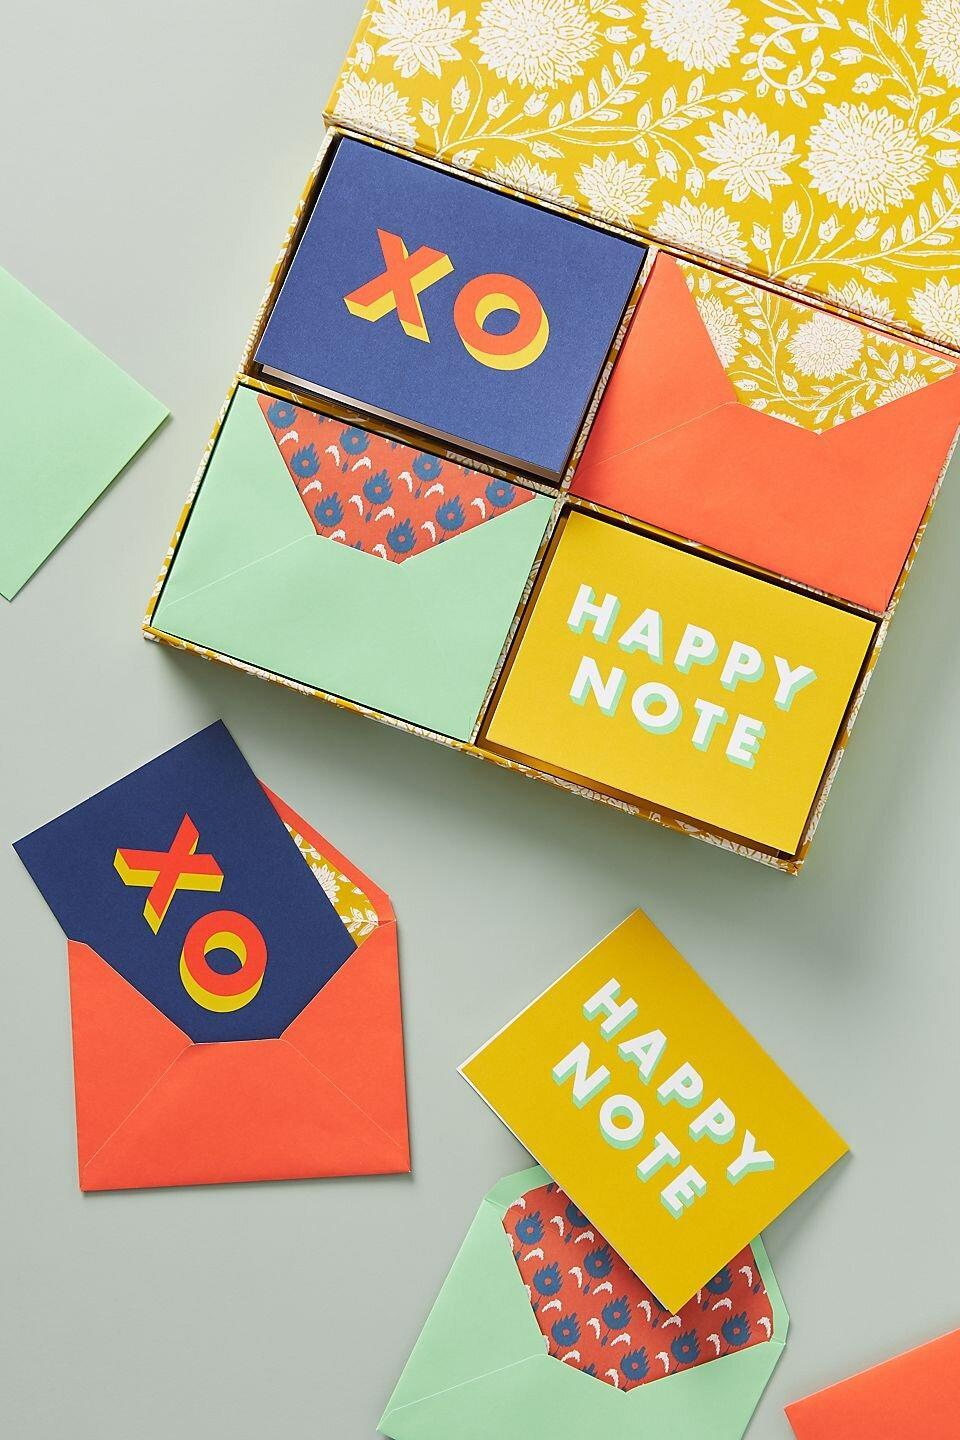 Pencil and Paper Co Happy Note Boxed Card Set